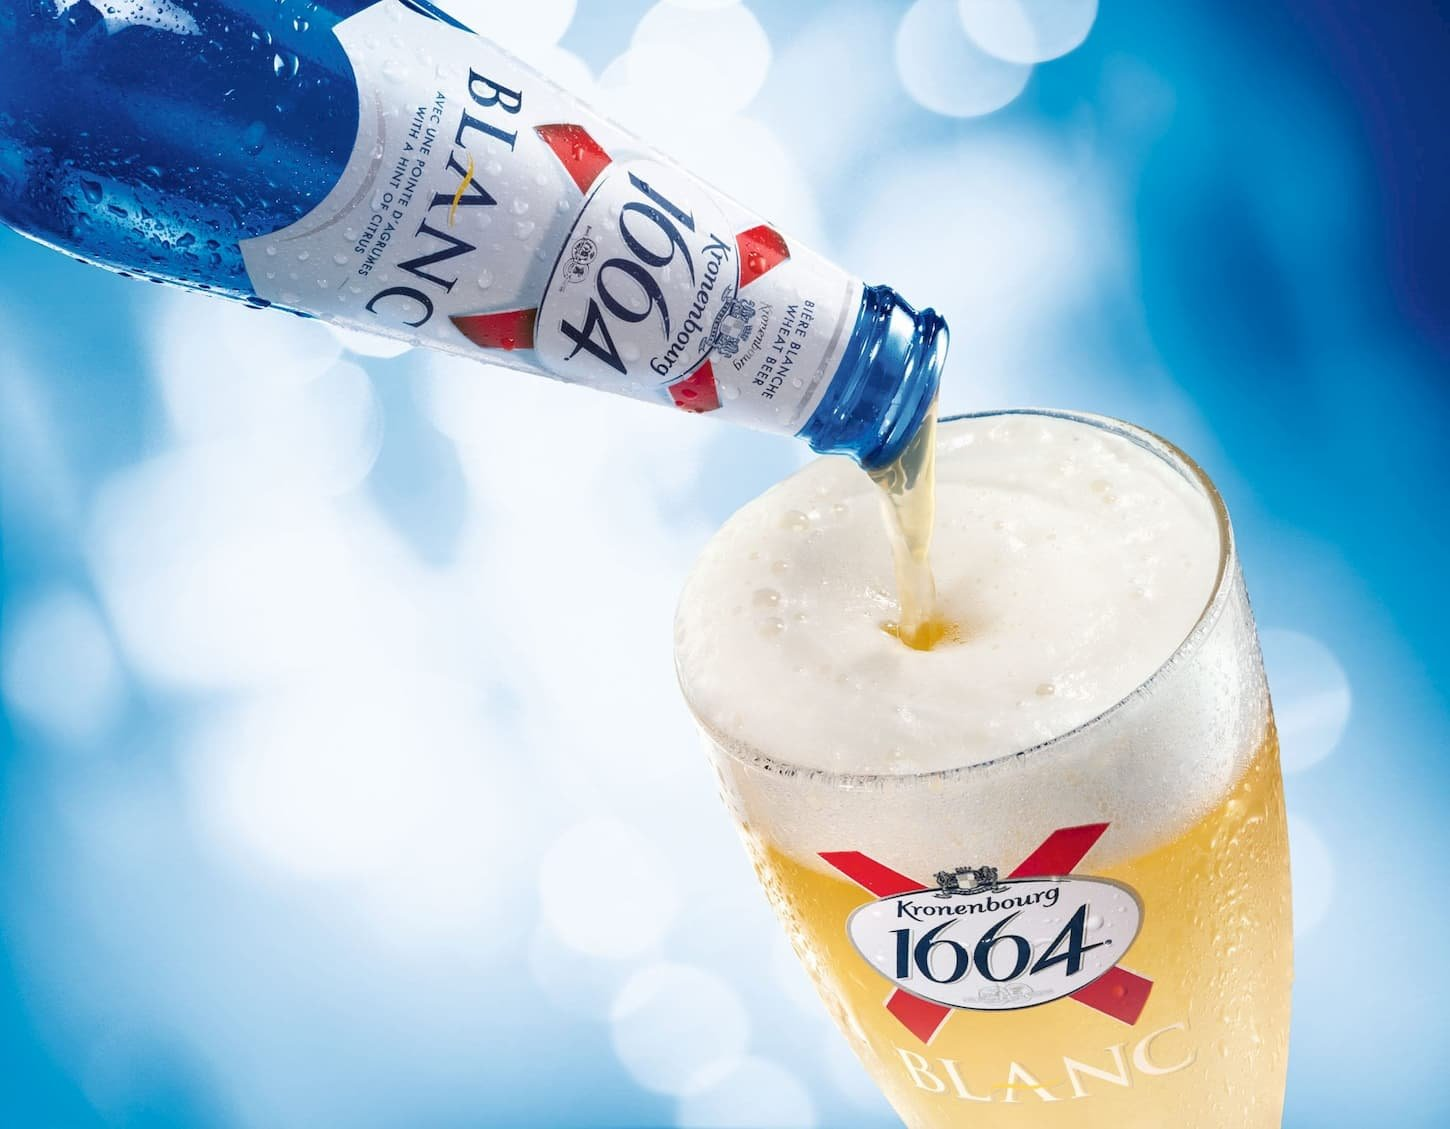 kronenbourg-beer-with-glass.jpg